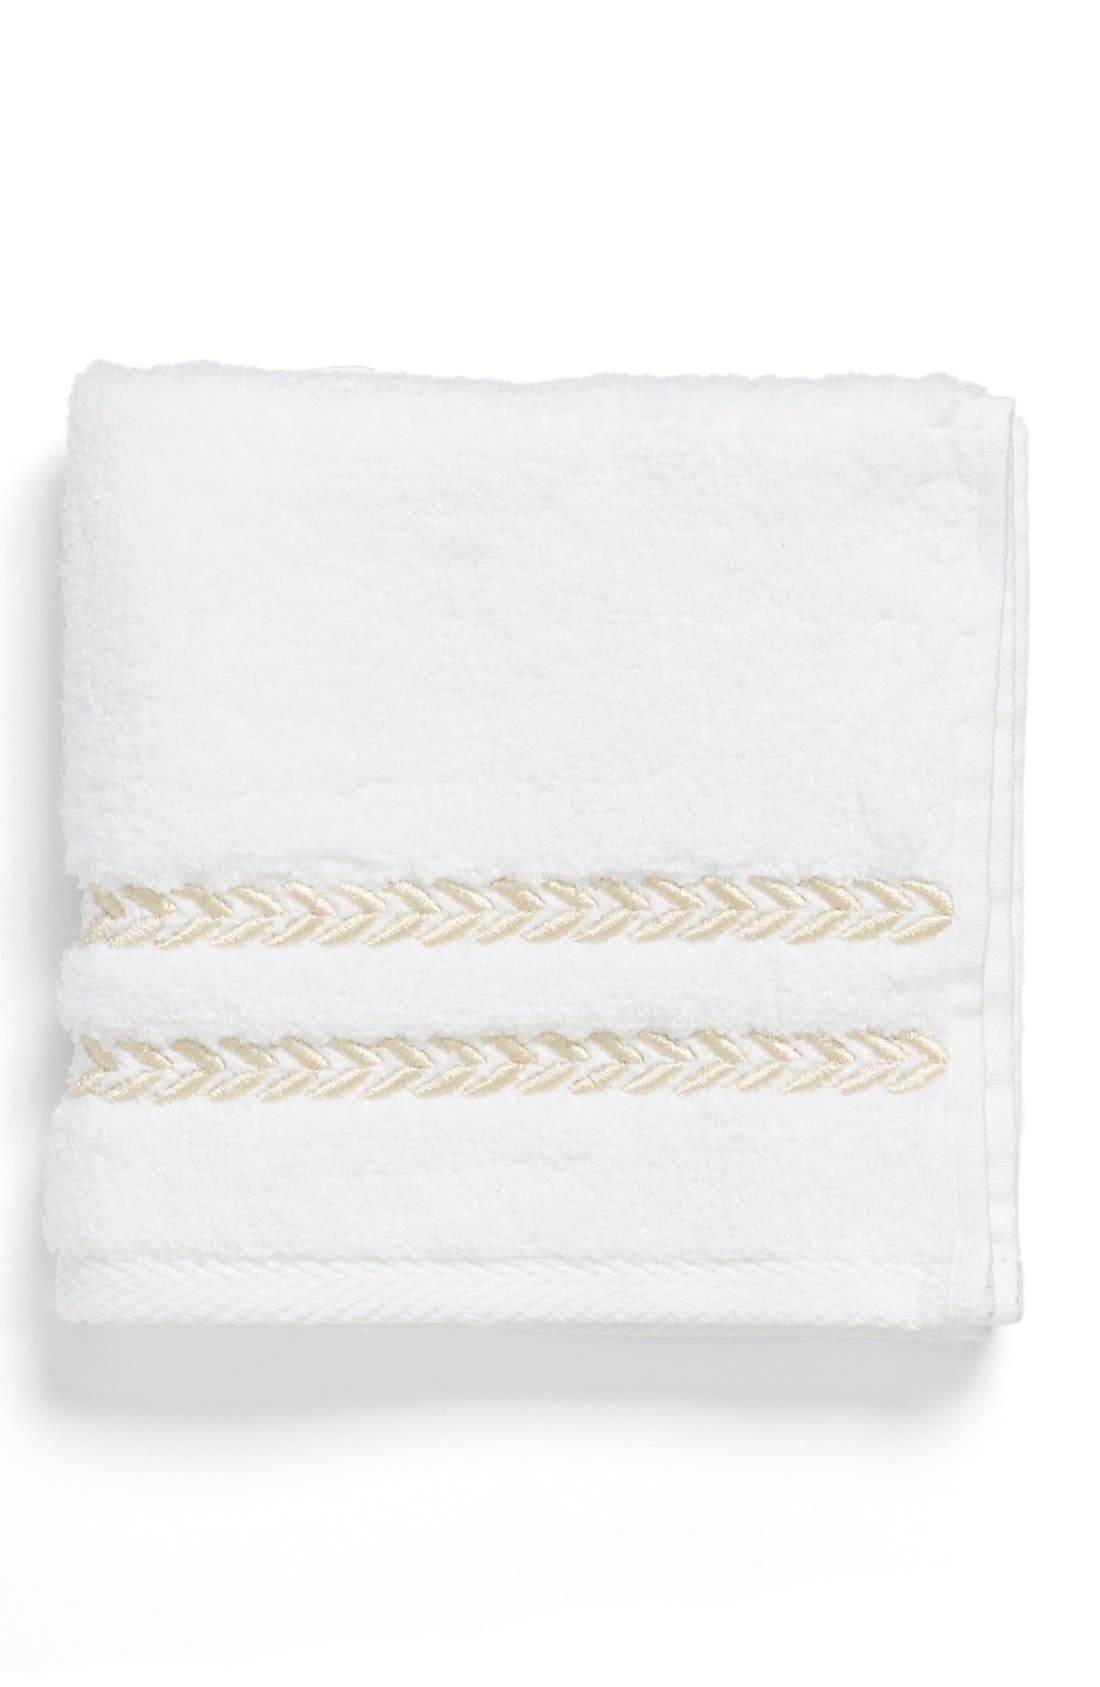 DENA HOME 'Pearl Essence' Wash Towel